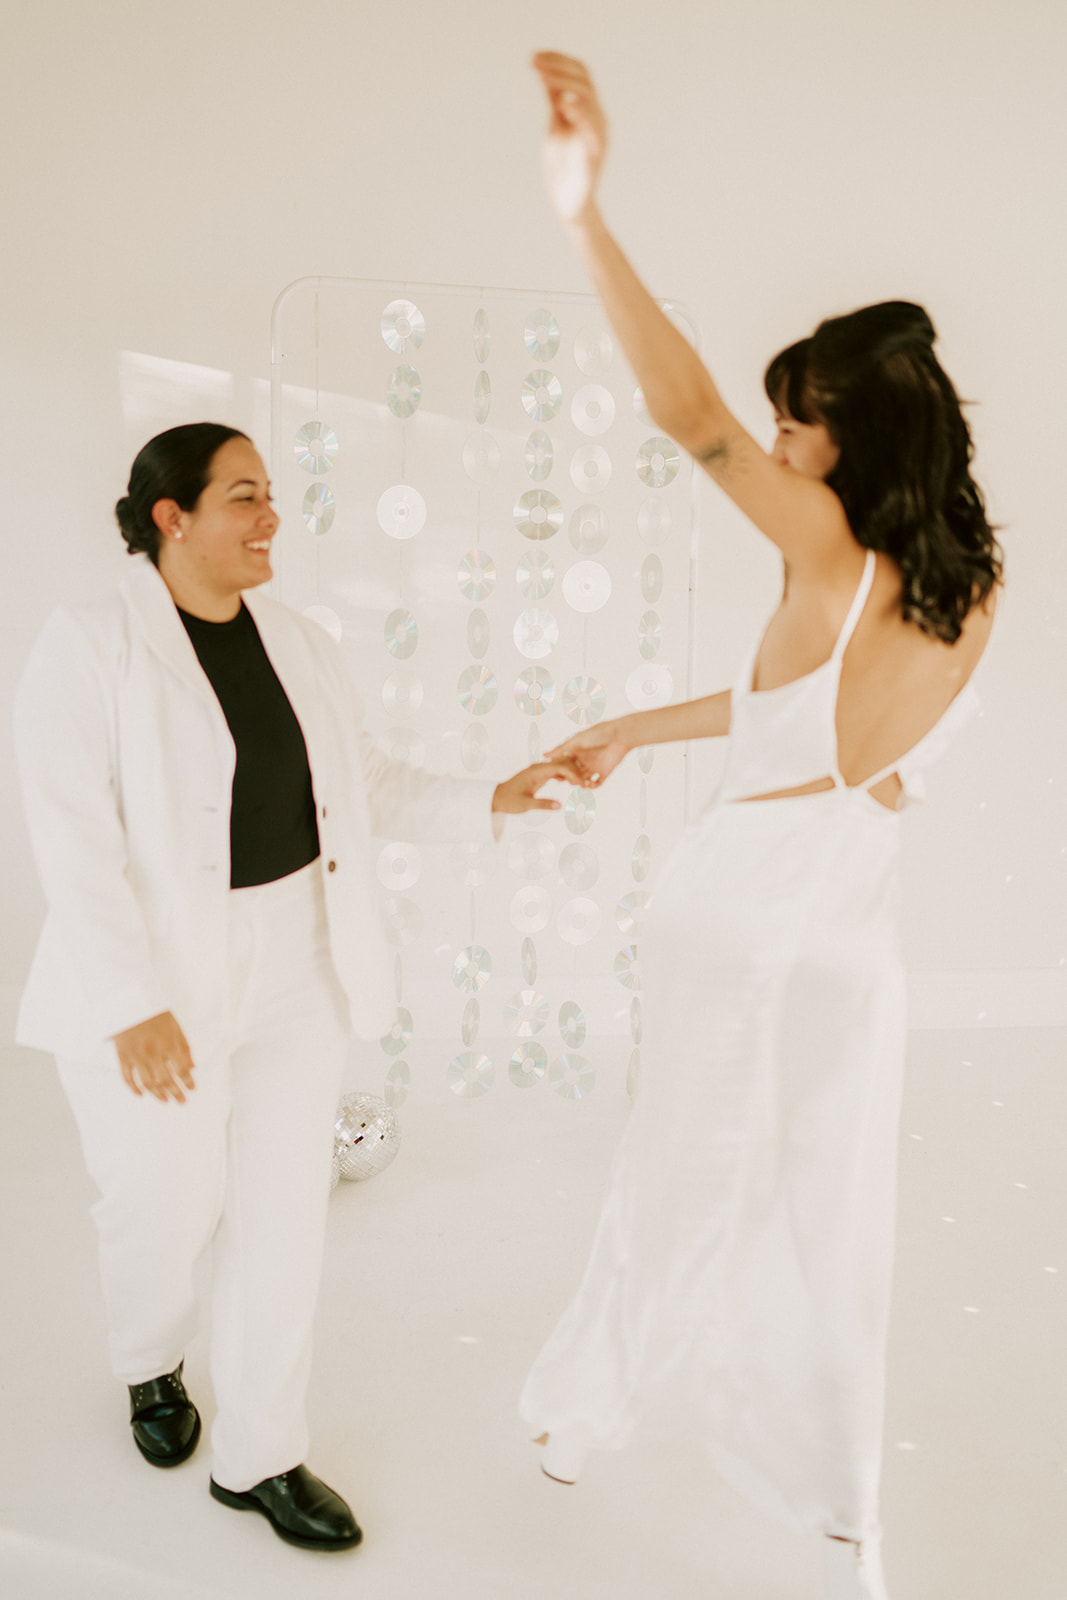 Miami Elopement Michelle Gonzalez photography lesbian USA same-sex marriage Dancing With Her magazine (1)